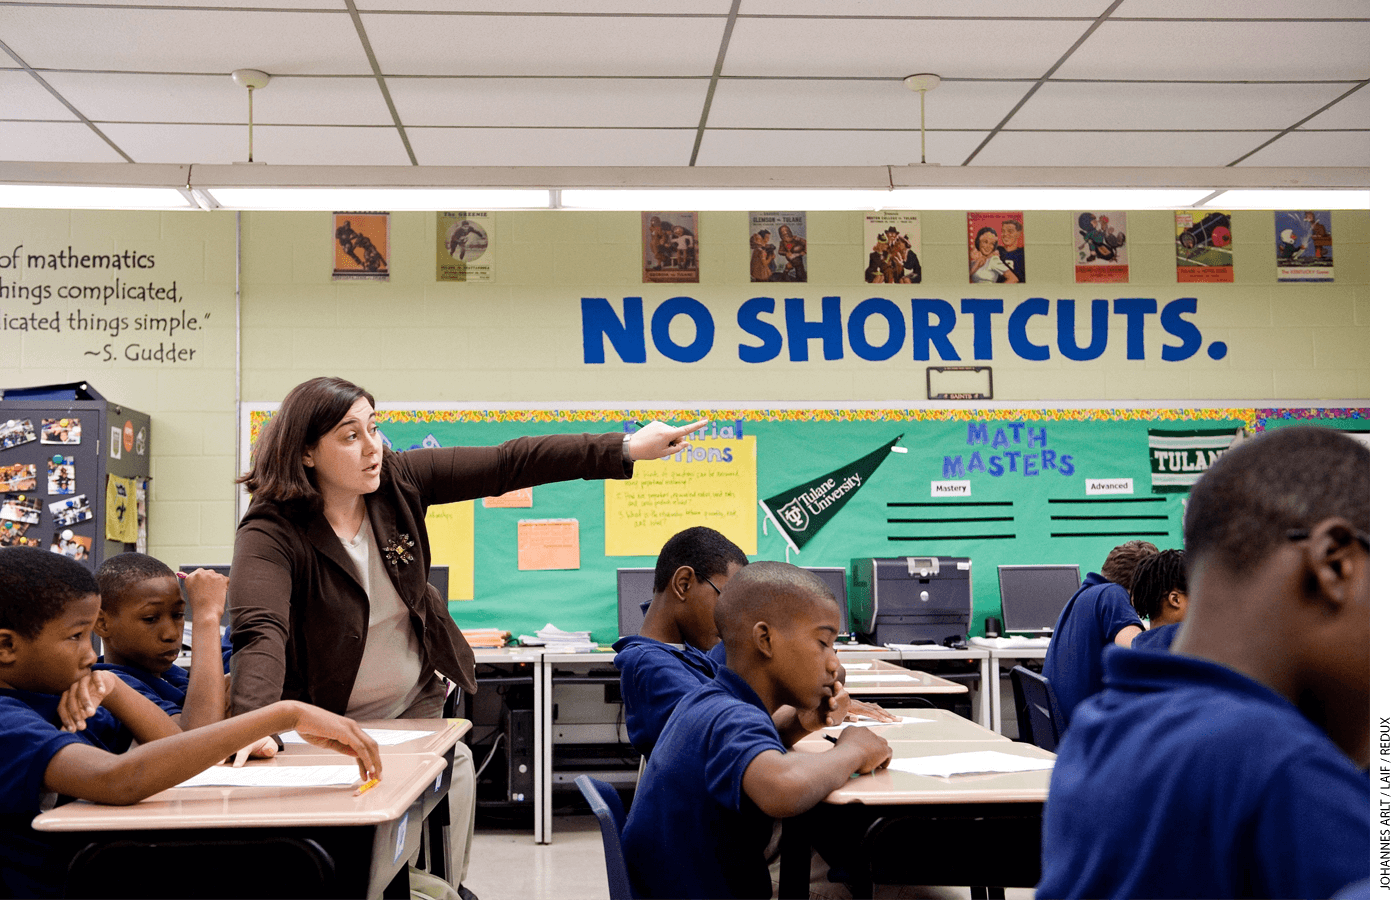 """Block letters on a classroom wall remind students that there are """"no shortcuts"""" at KIPP Believe College Prep in New Orleans, part of the KIPP network that pioneered the no-excuses model."""